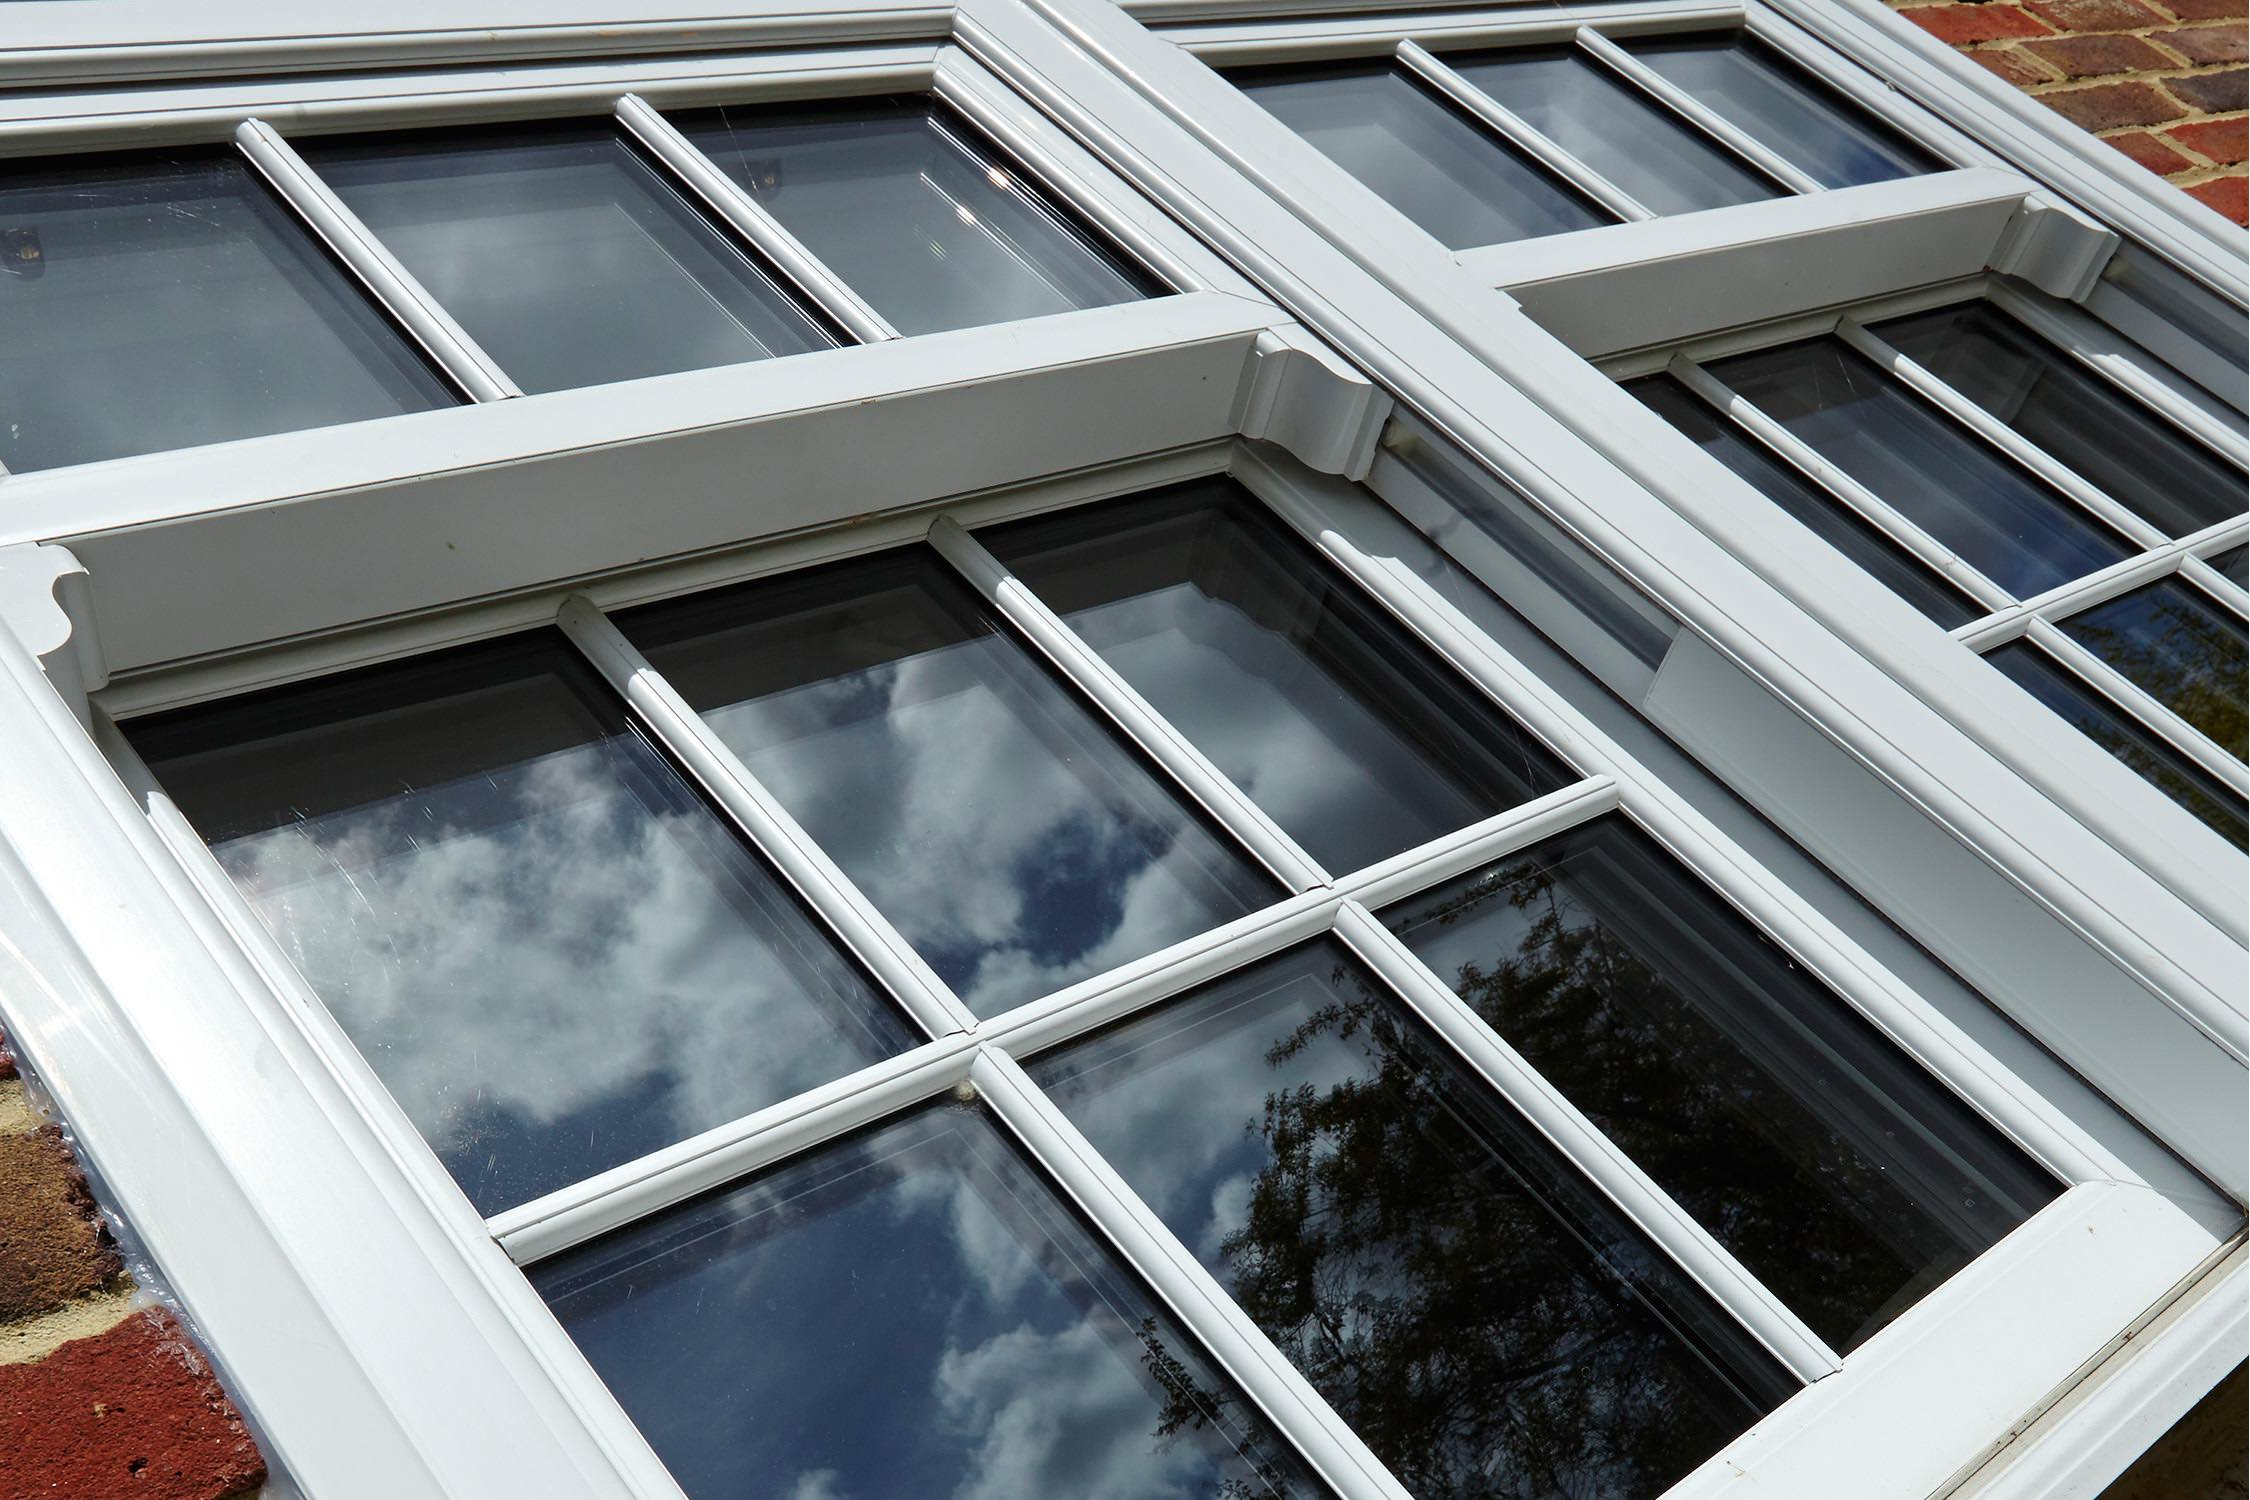 most homes have double glazing on windows